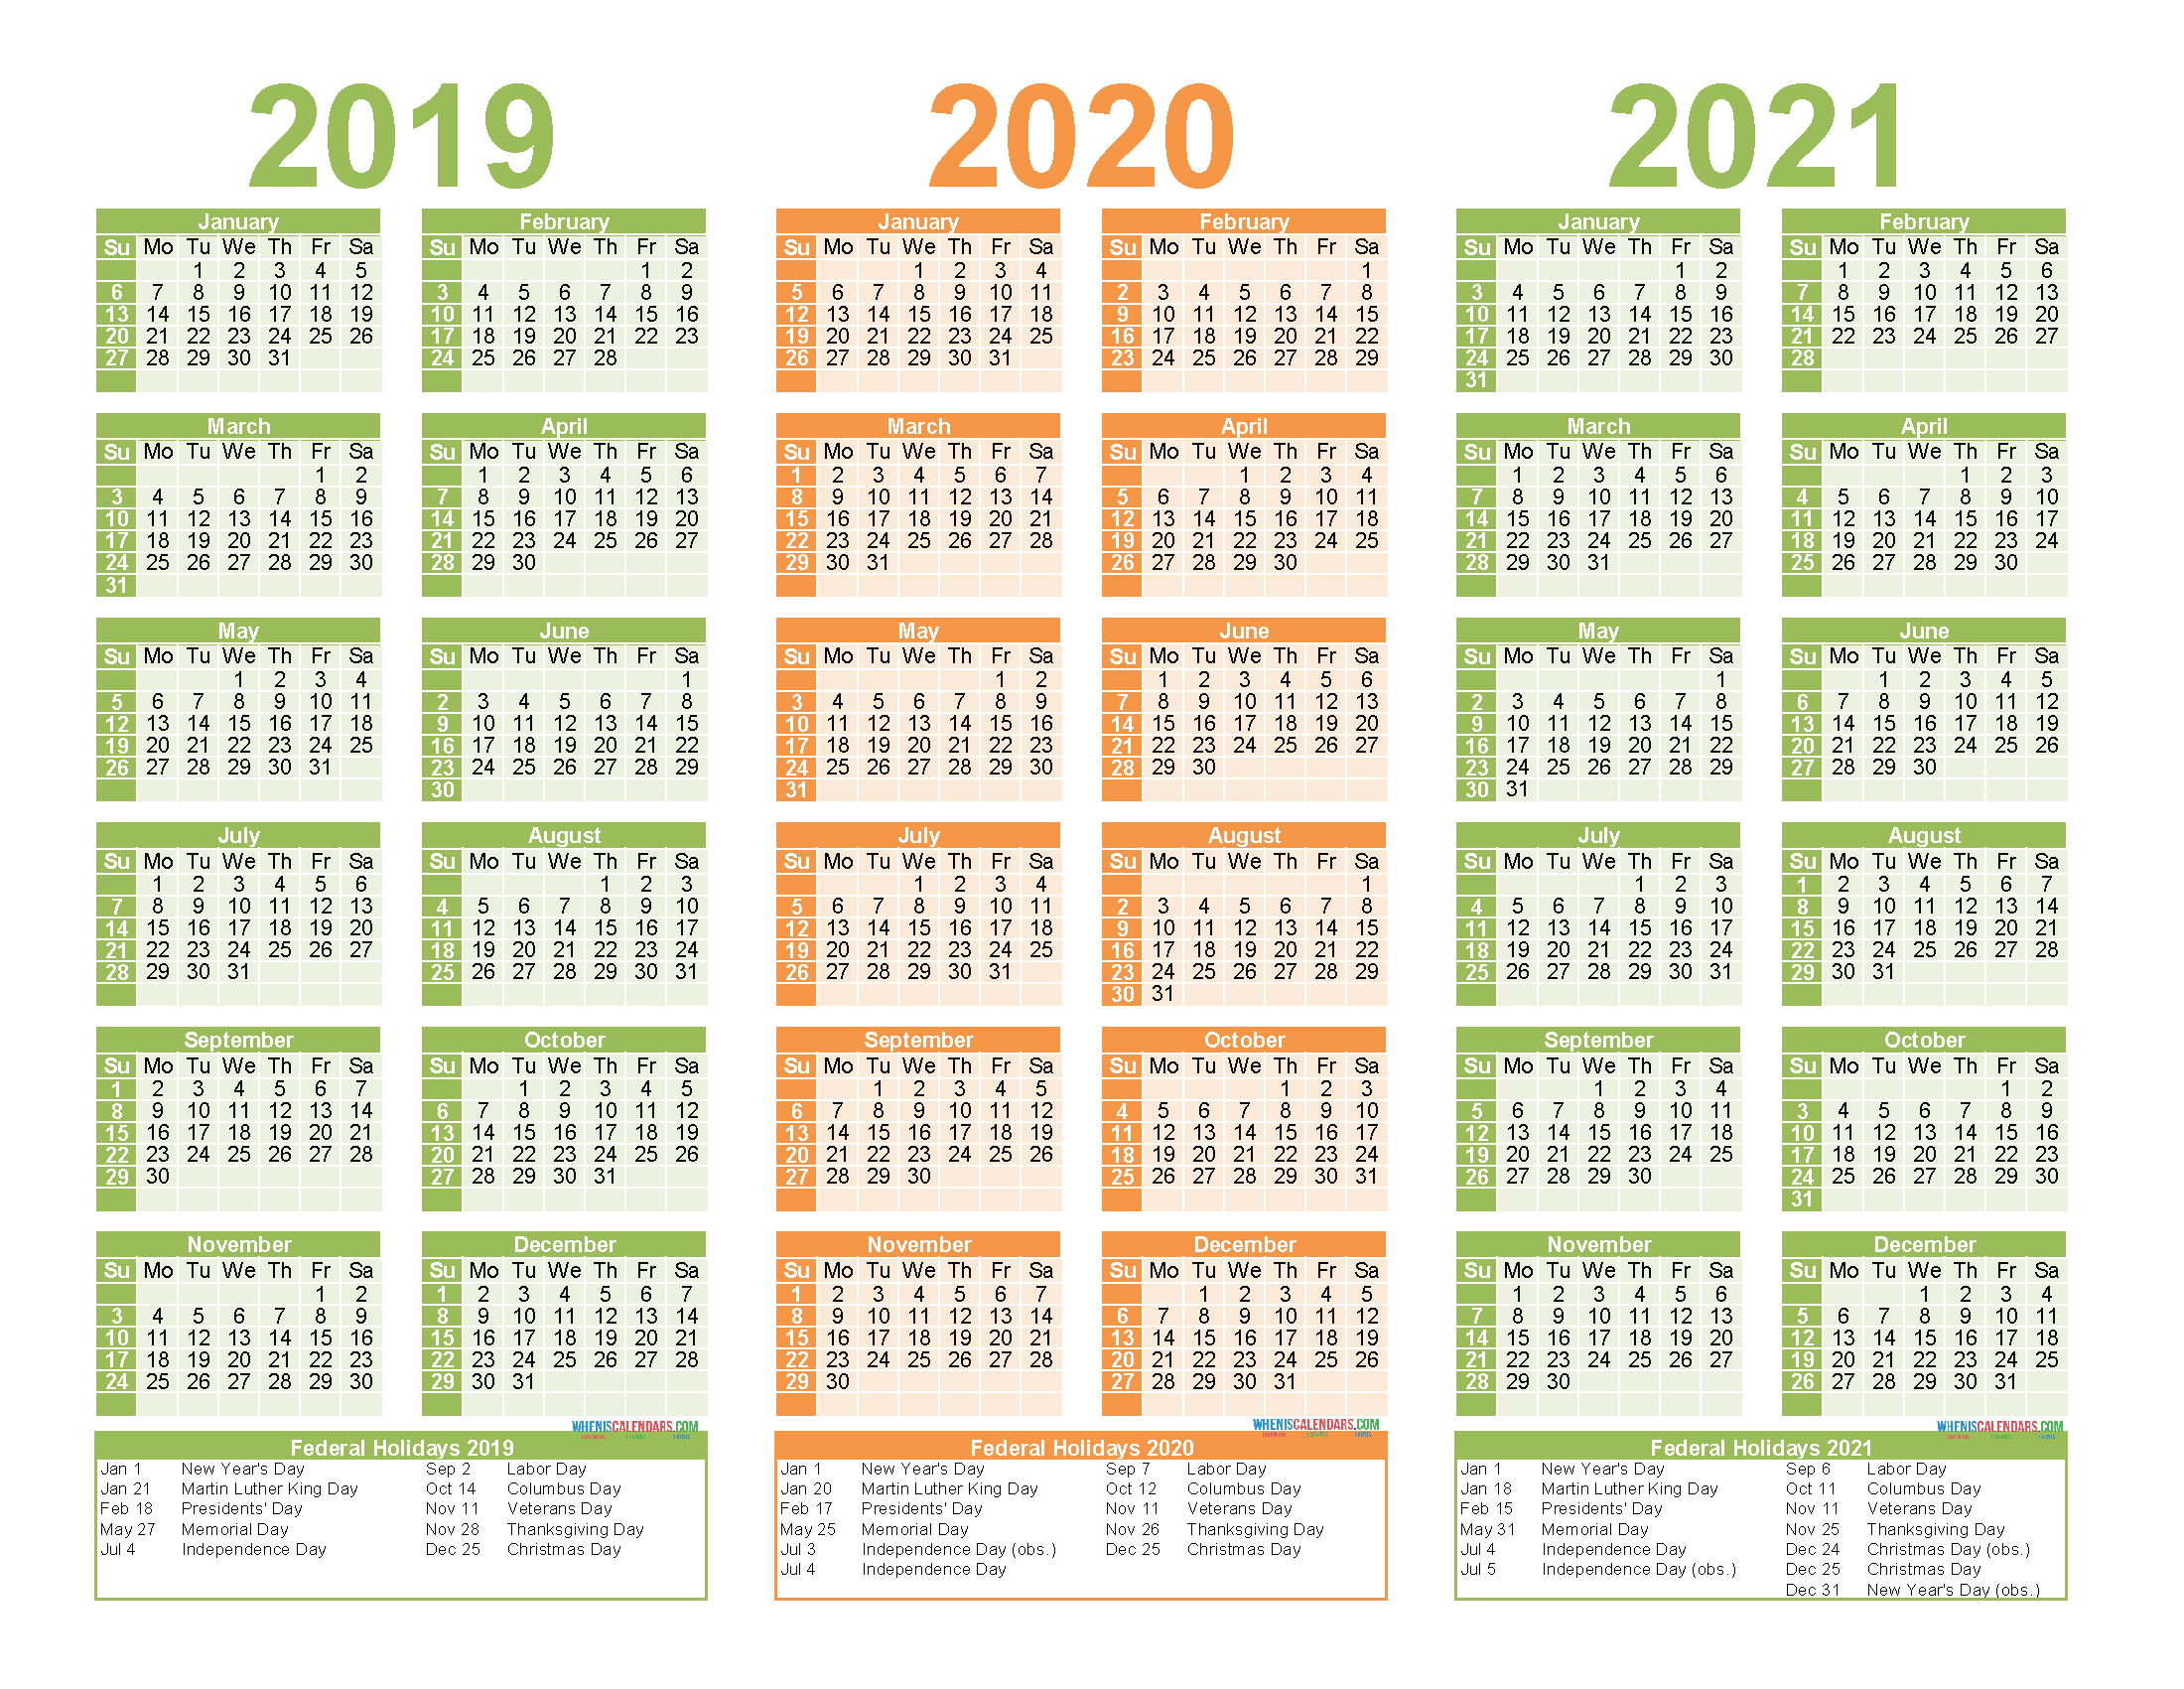 2019 To 2021 Calendar Printable Free Pdf, Word, Image – Free